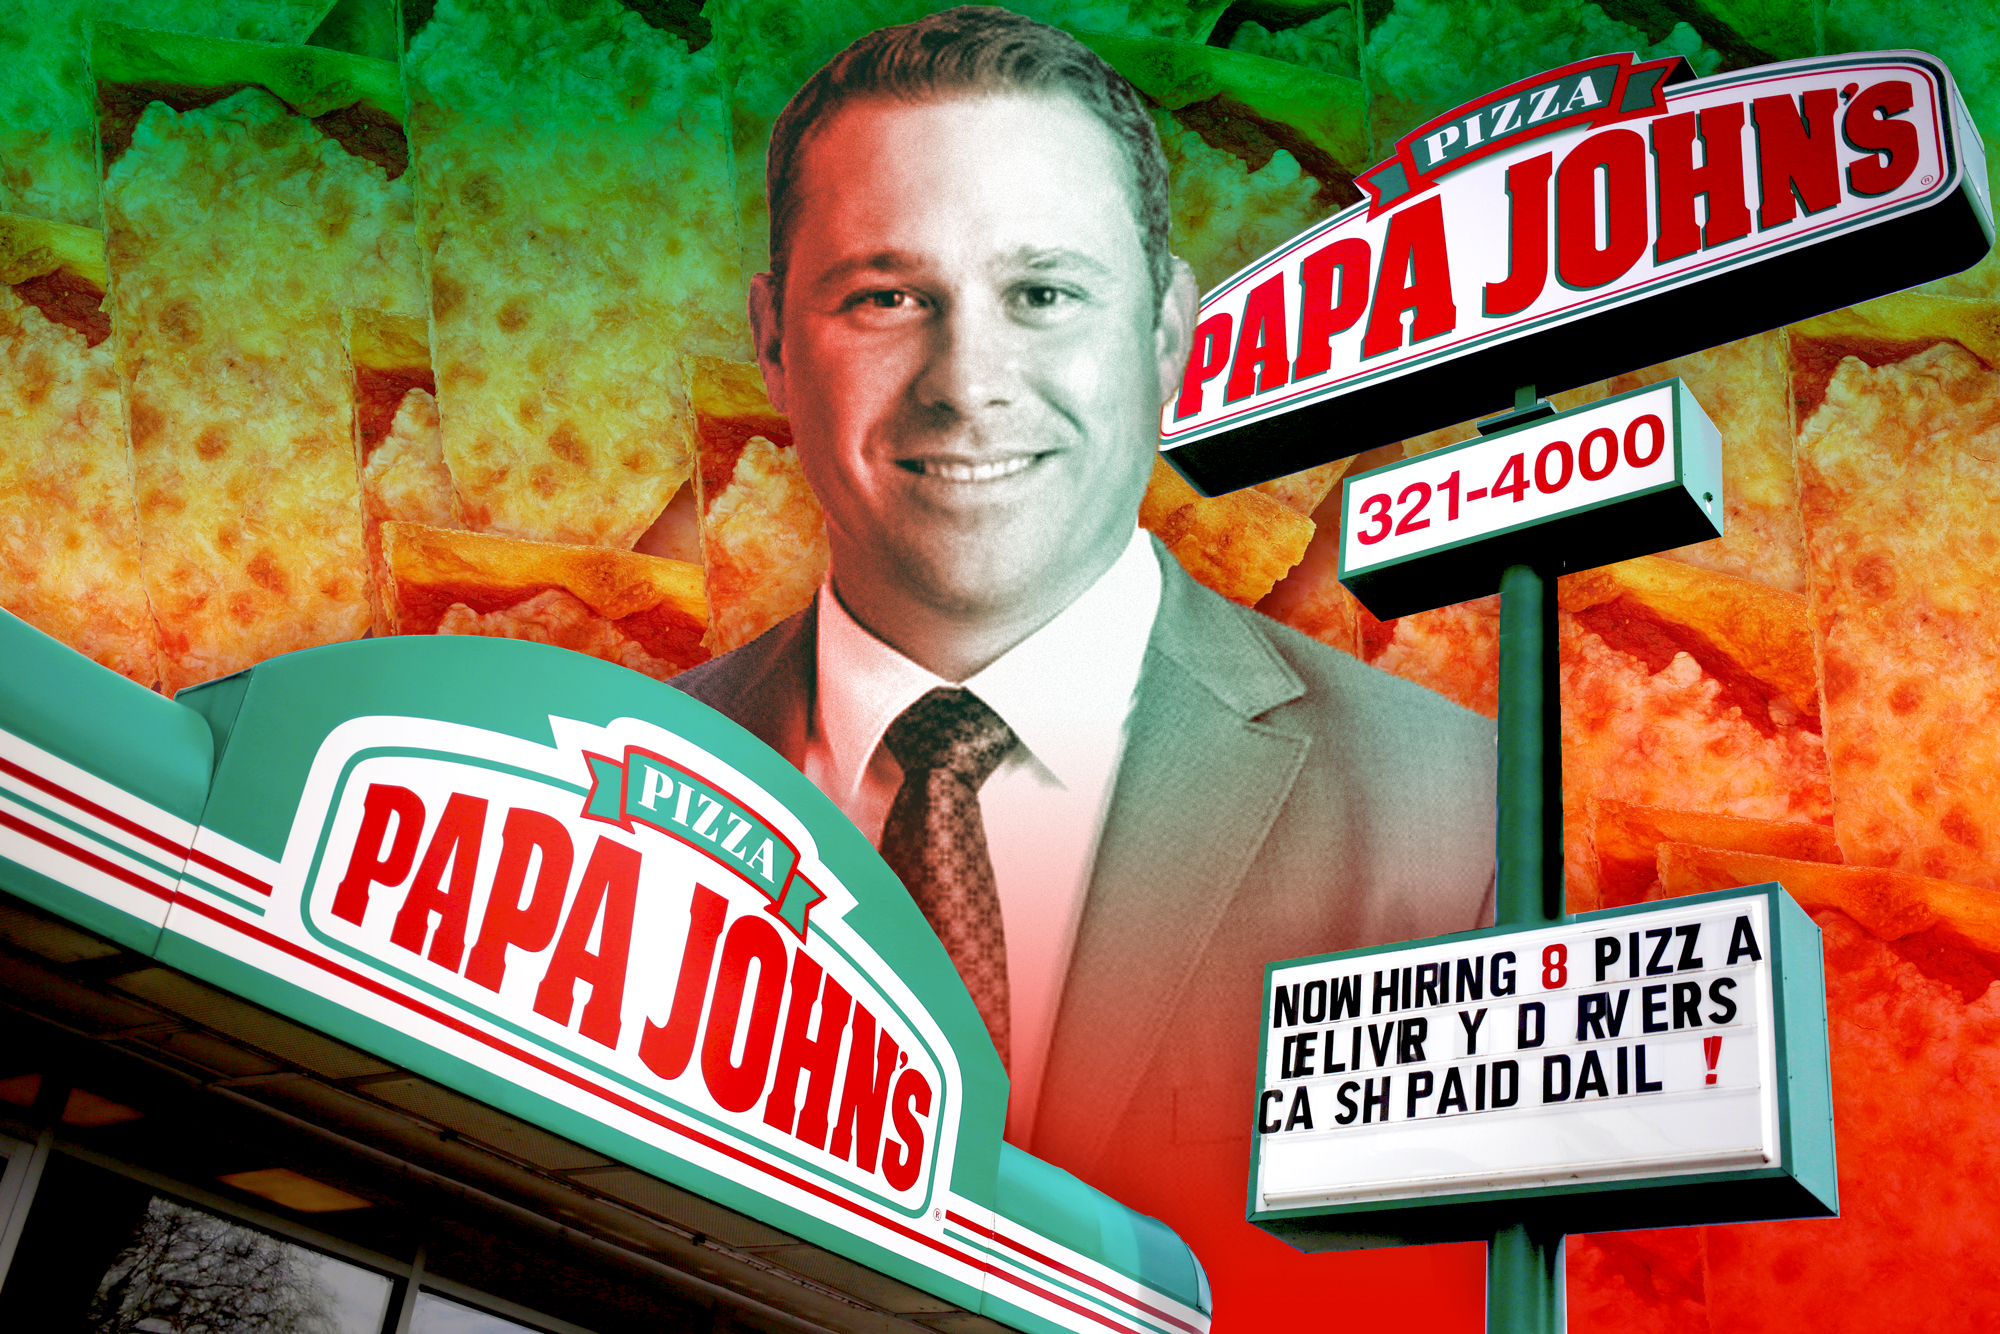 In an ongoing effort to turn around Papa John's tarnished image, the pizza chain names a new CEO